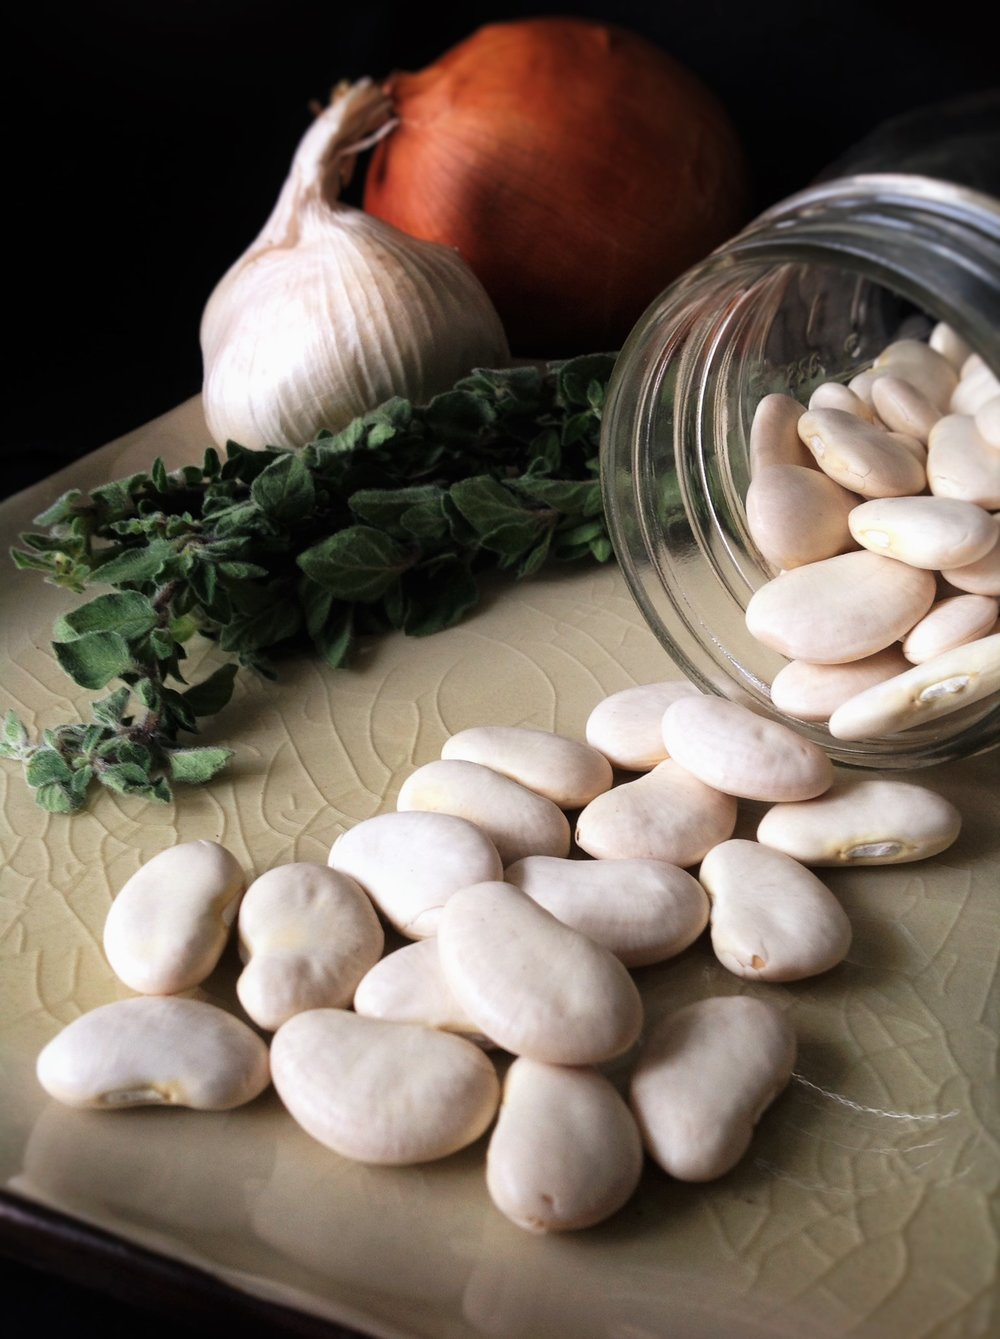 Chef's Plant-Based Tip: Giant Lima Beans, also called Gigantes, are the classic ingredient for this traditional Greek recipe.  They bring hearty plant-based texture and healthy vegan protein